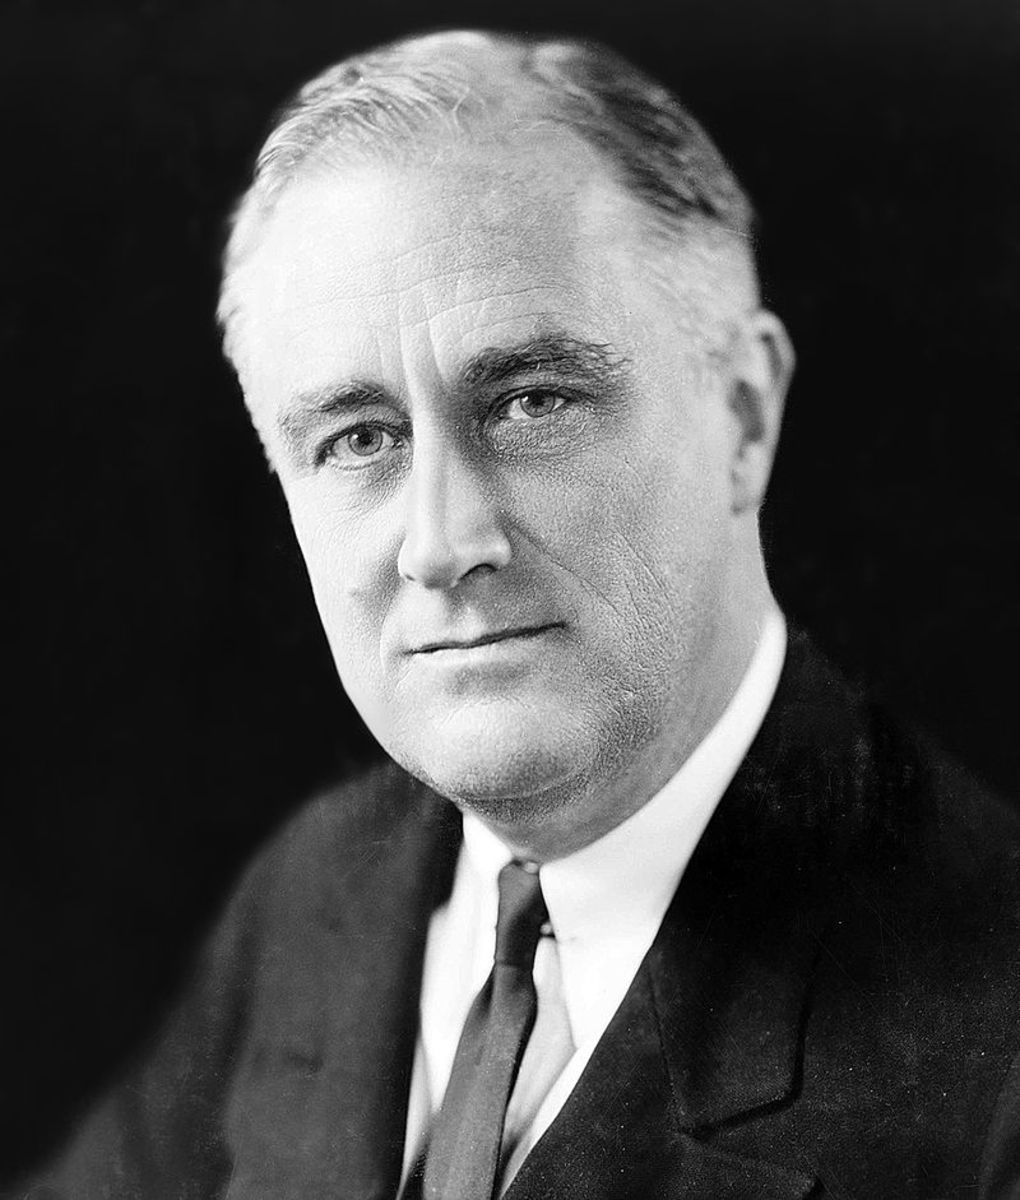 A portrait of Franklin Delano Roosevelt.